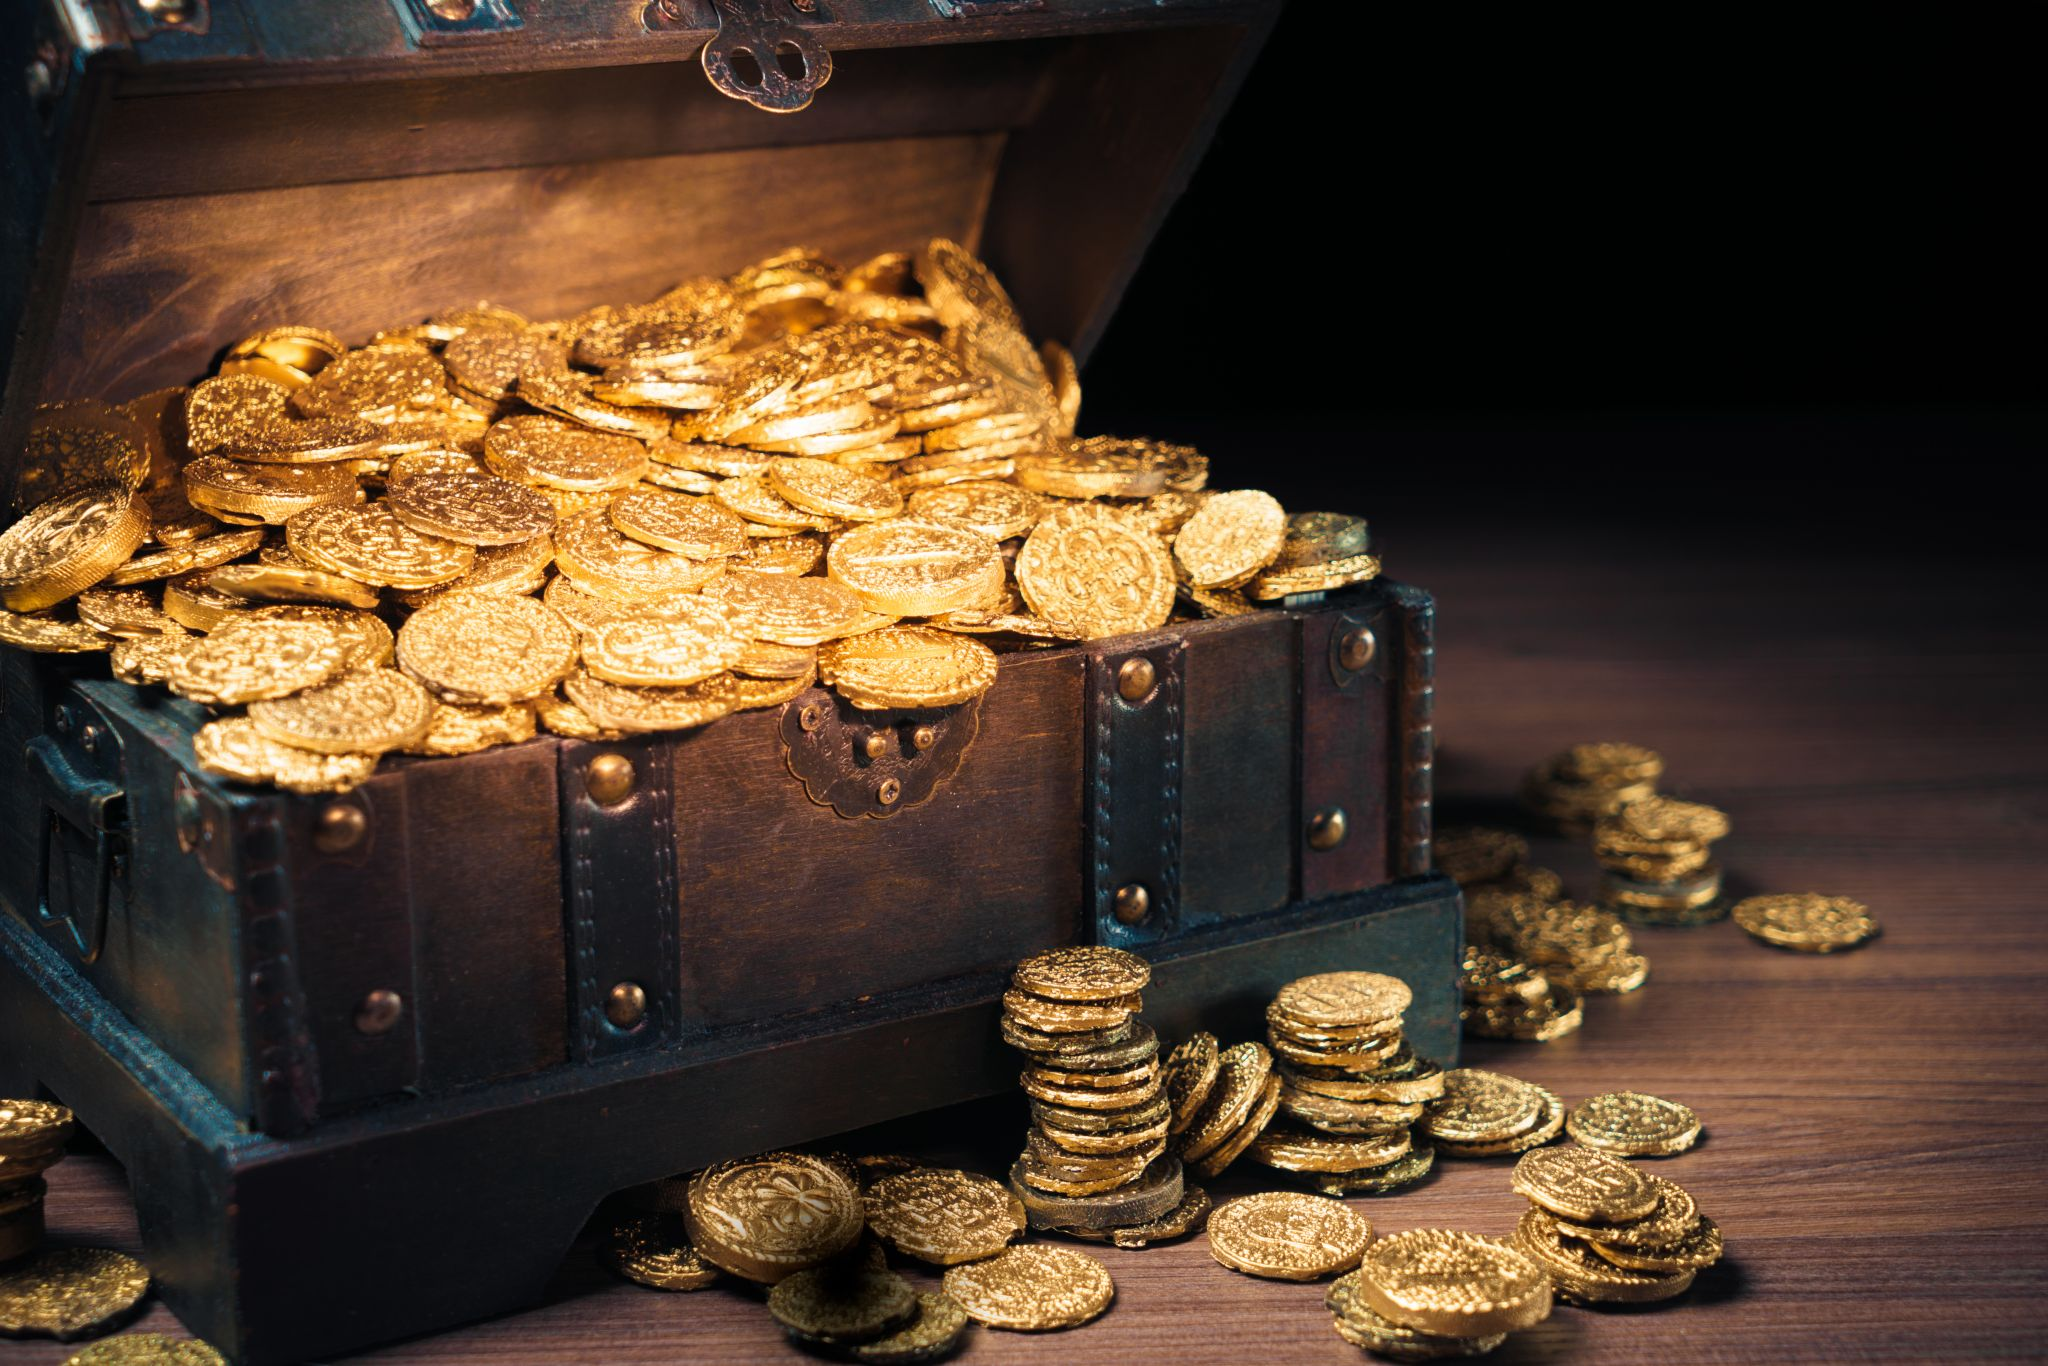 Houstonians can win $100K through a real-life treasure hunt next month